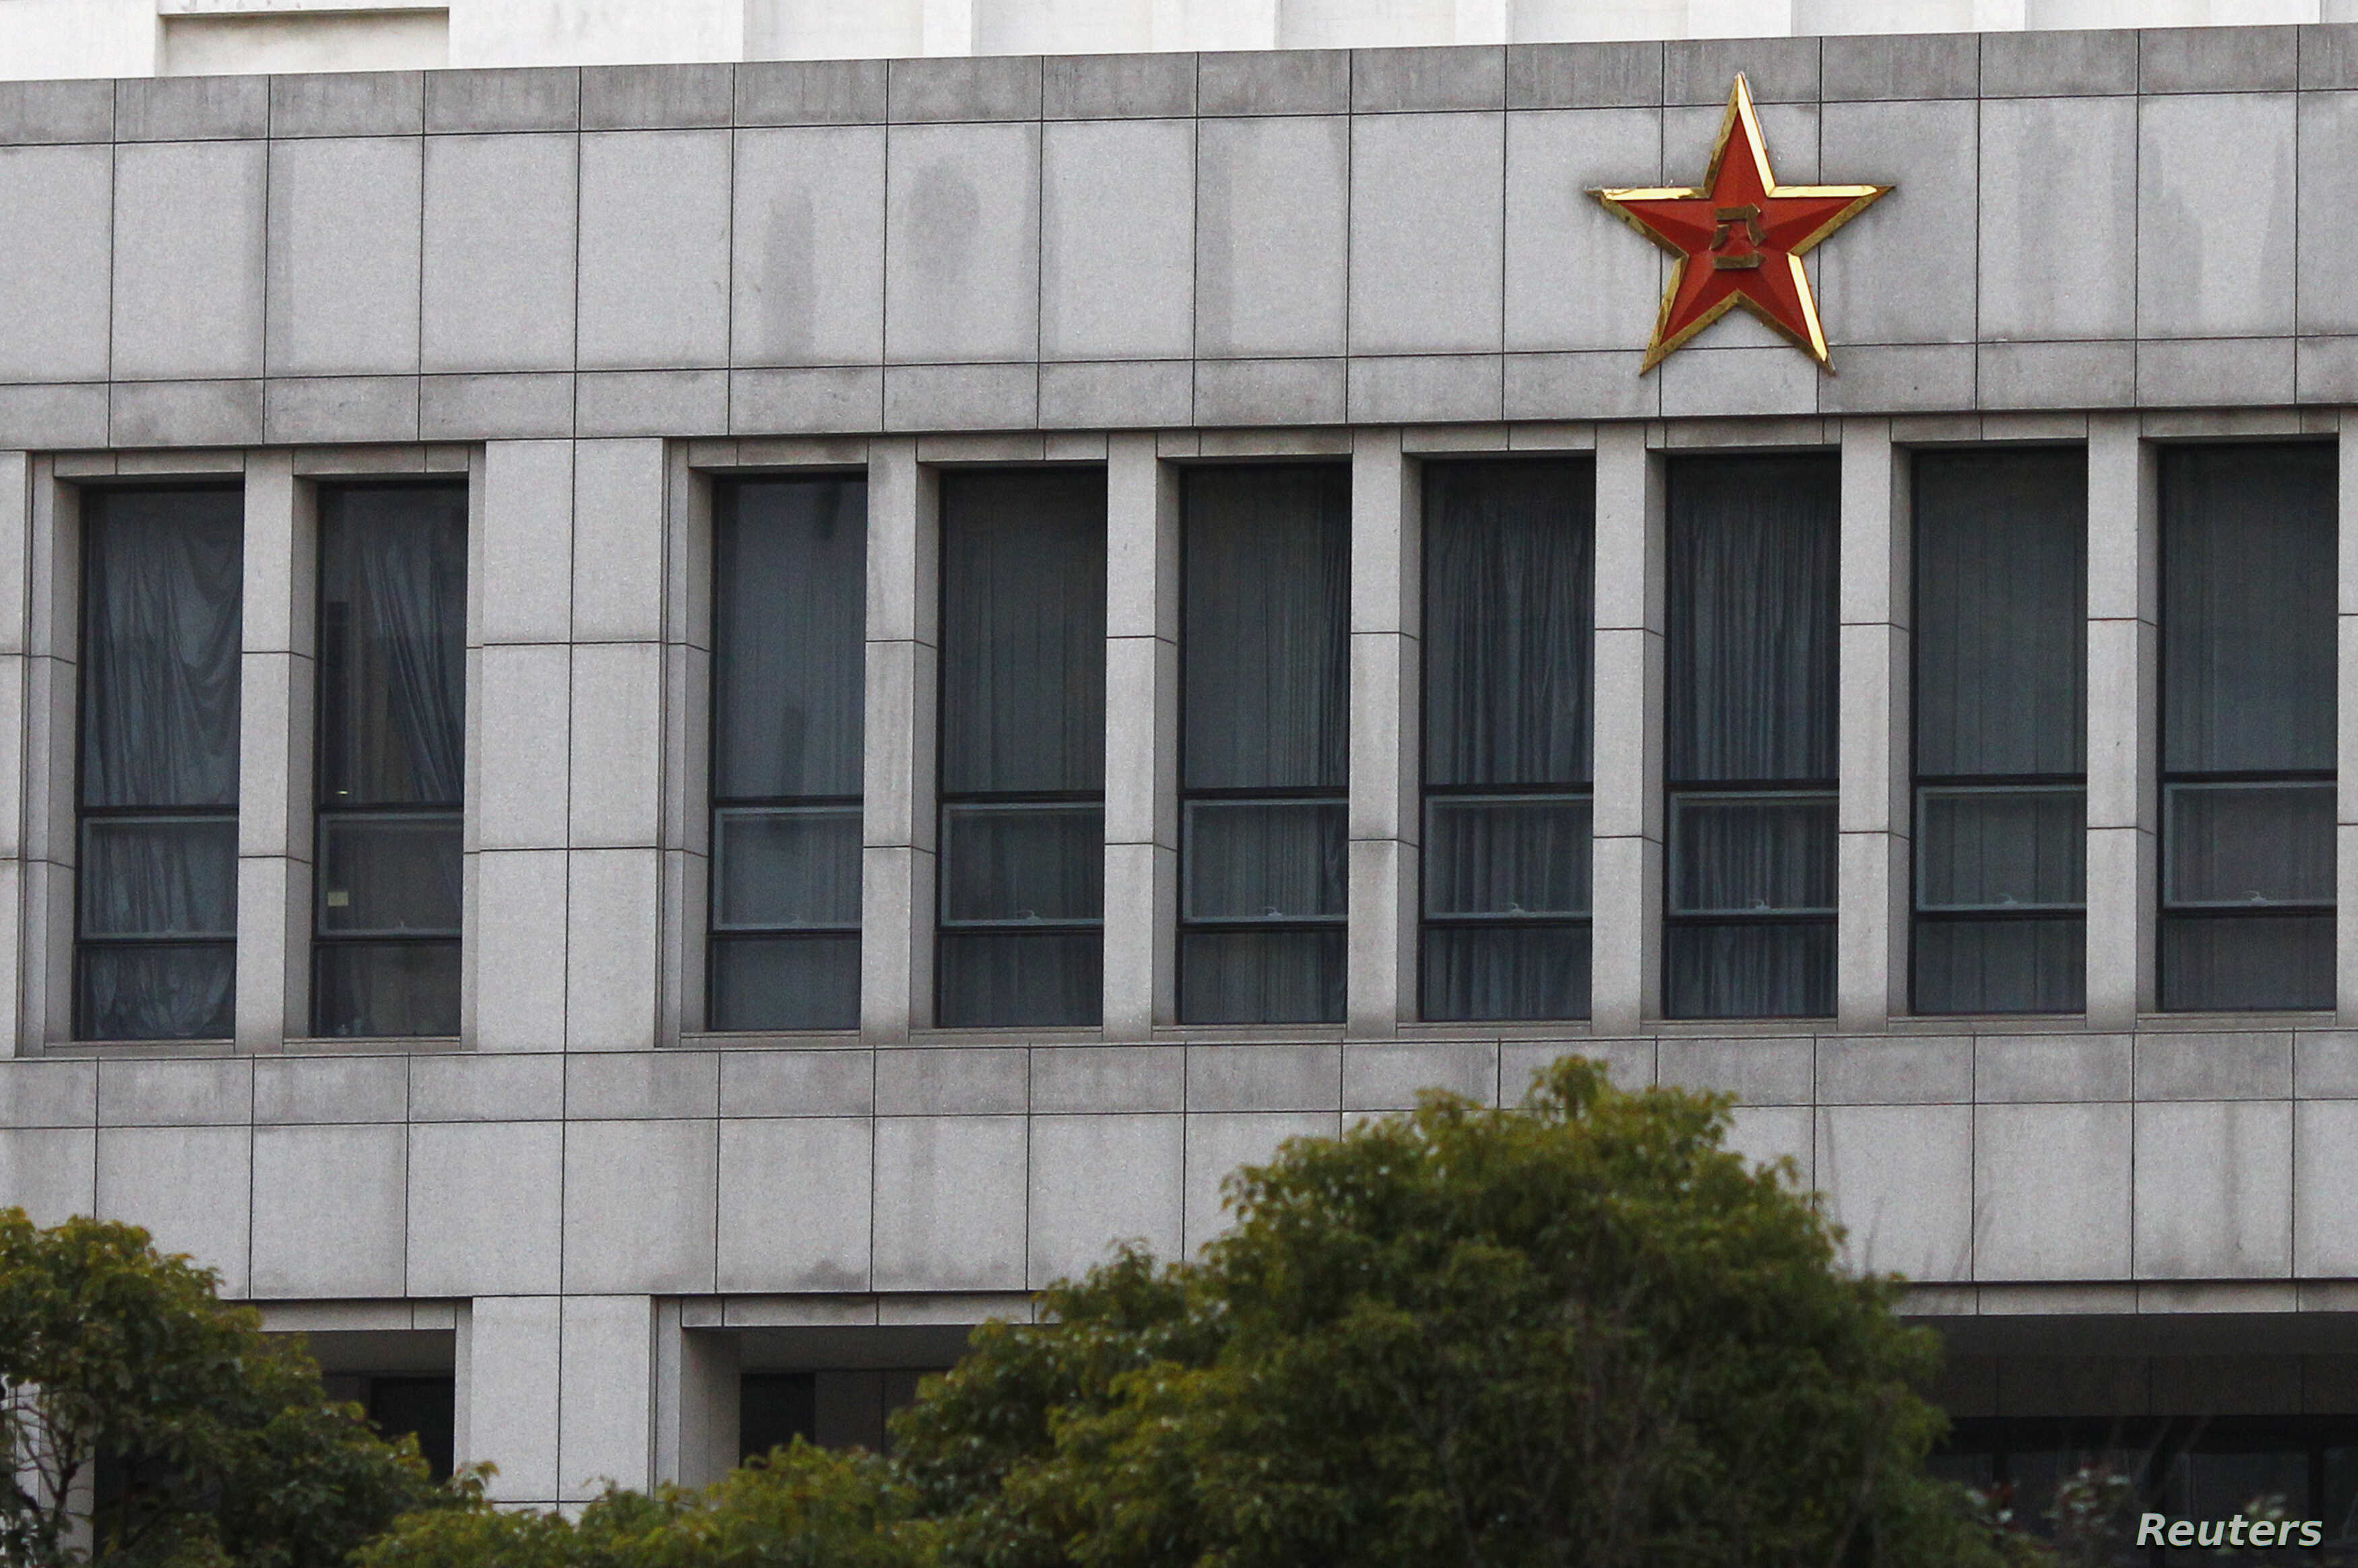 China's Cyber Espionage Case a Guide to Hacking | Voice of